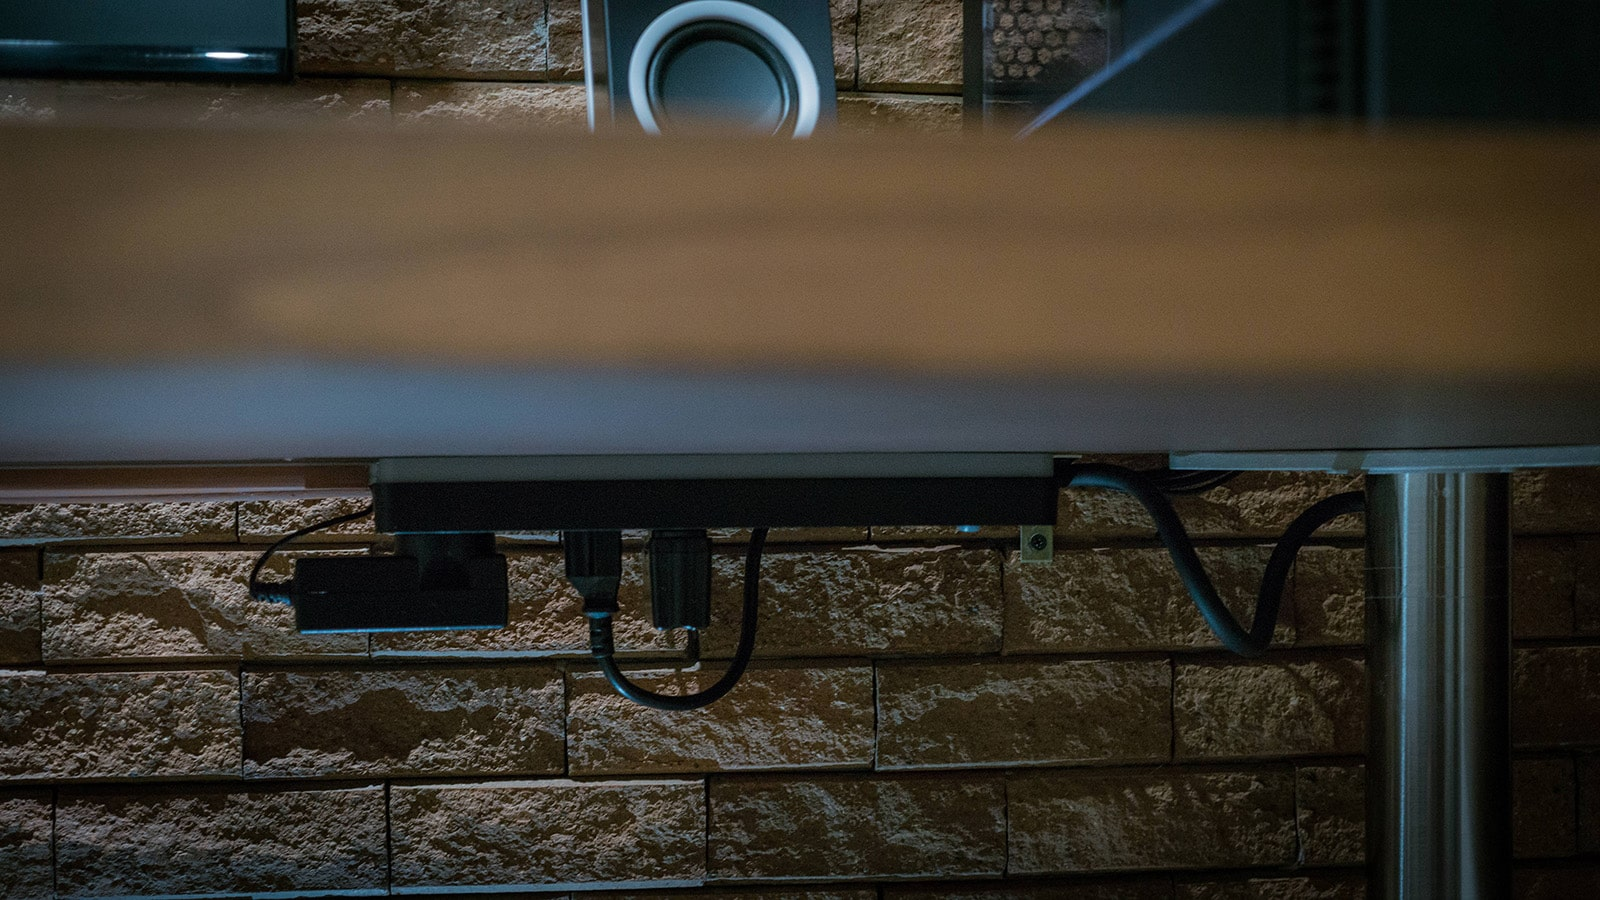 Mounted power strip for under desk cable management